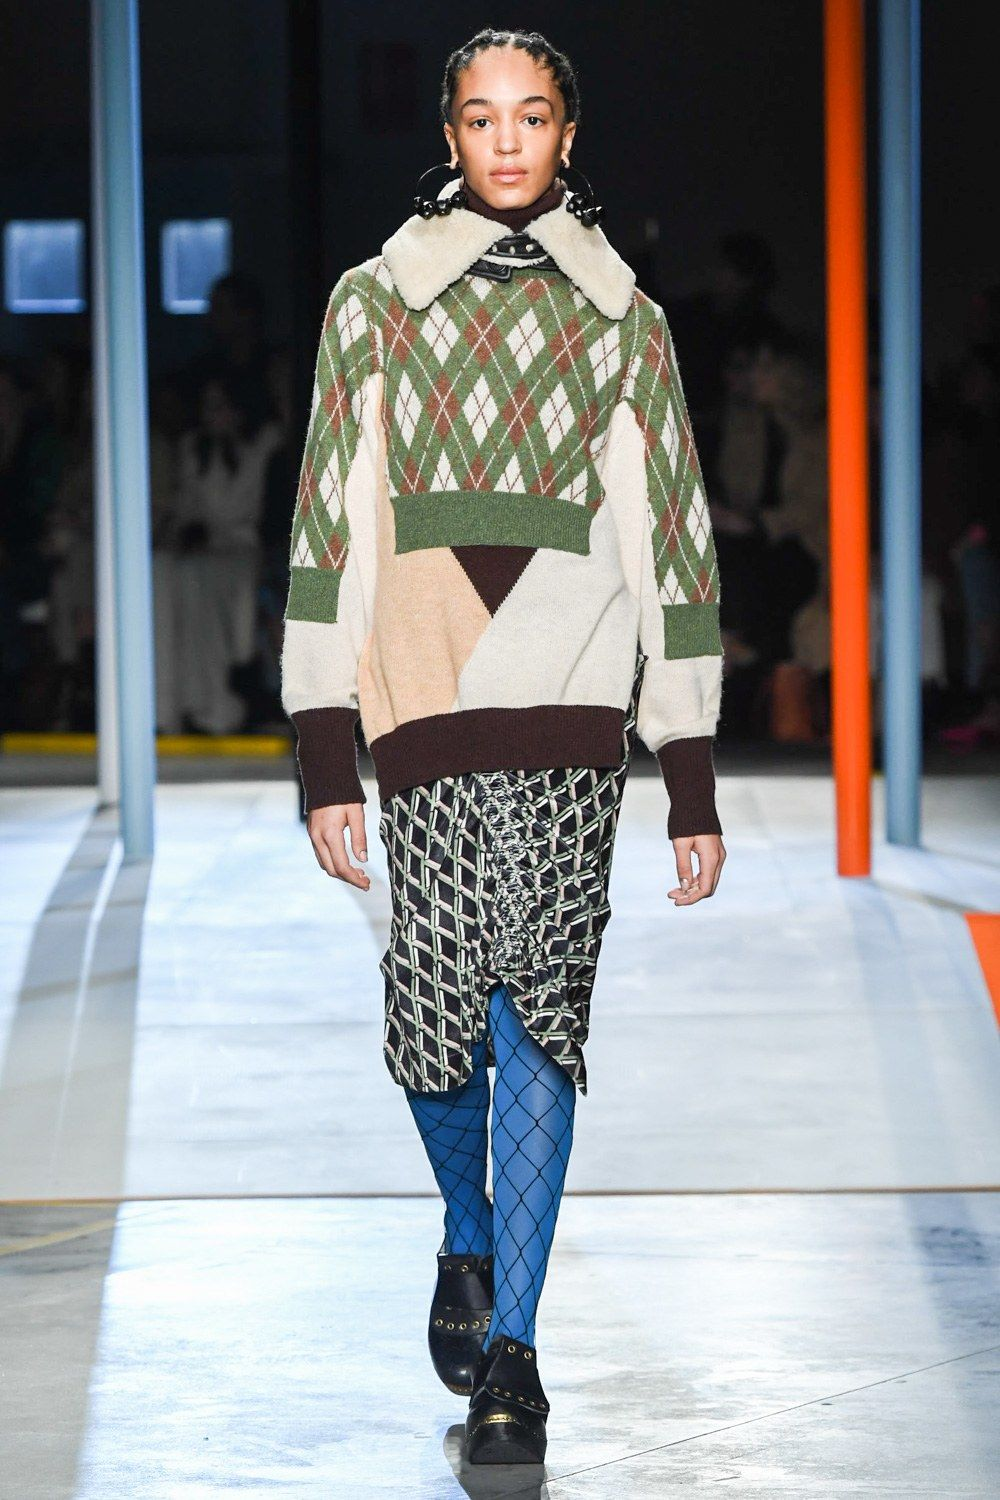 MY FAVE AW20 TRENDS FROM LONDON FASHION WEEK